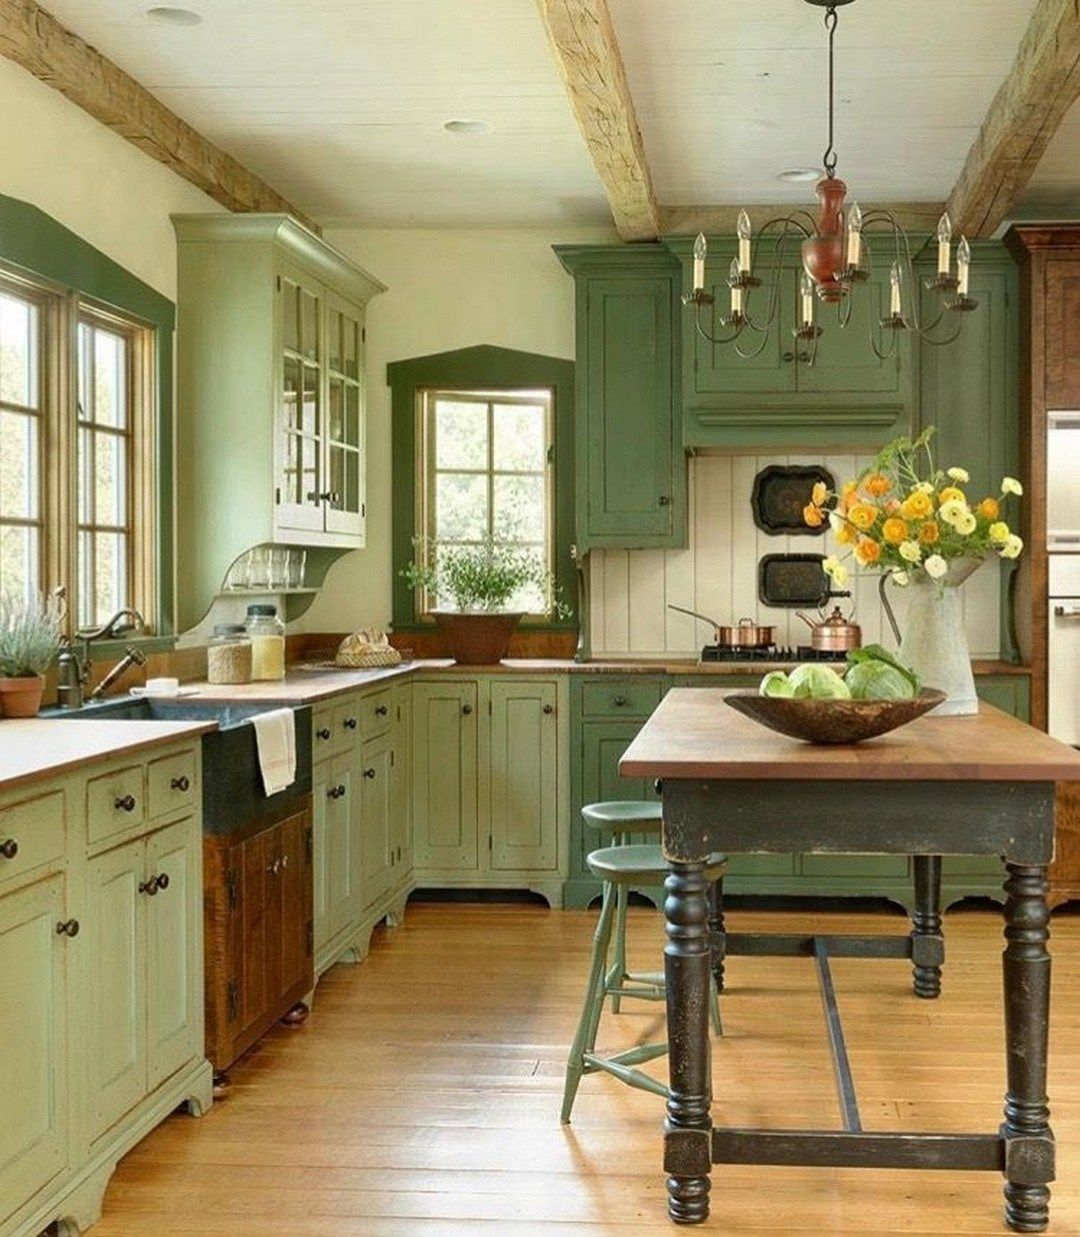 31 Popular Green Kitchen Cabinet Colors Ideas (11) - Green kitchen cabinets, New kitchen cabinets, Kitchen renovation, Rustic kitchen, Kitchen design, Country kitchen - 31 Popular Green Kitchen Cabinet Colors Ideas (11)